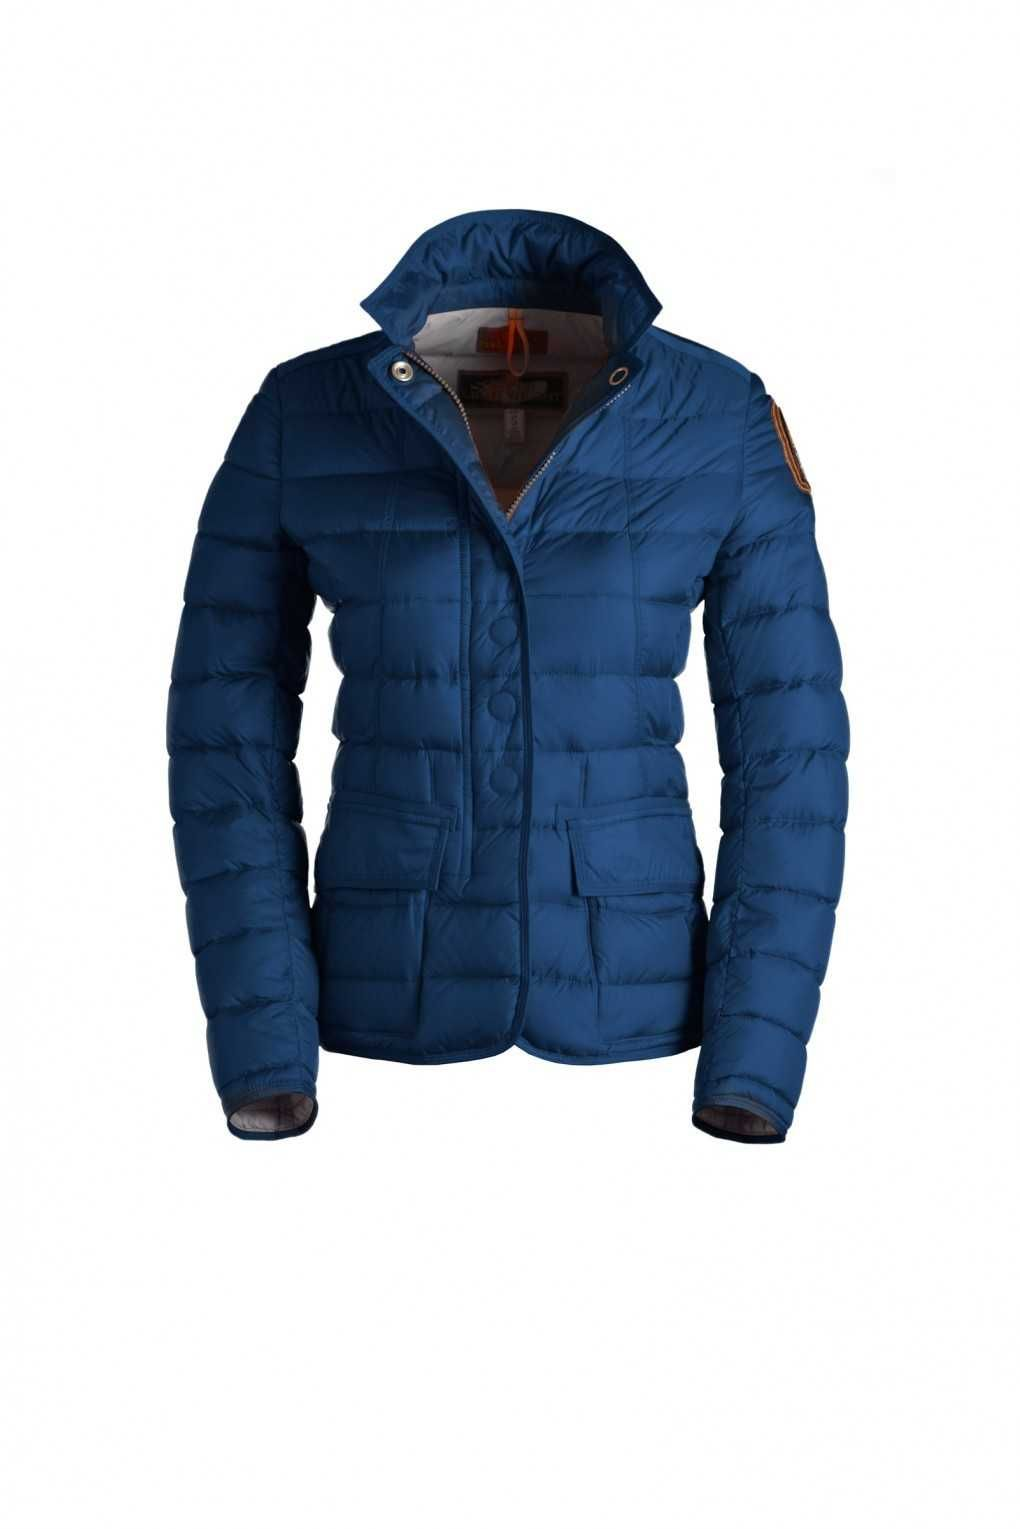 parajumpers winter sale